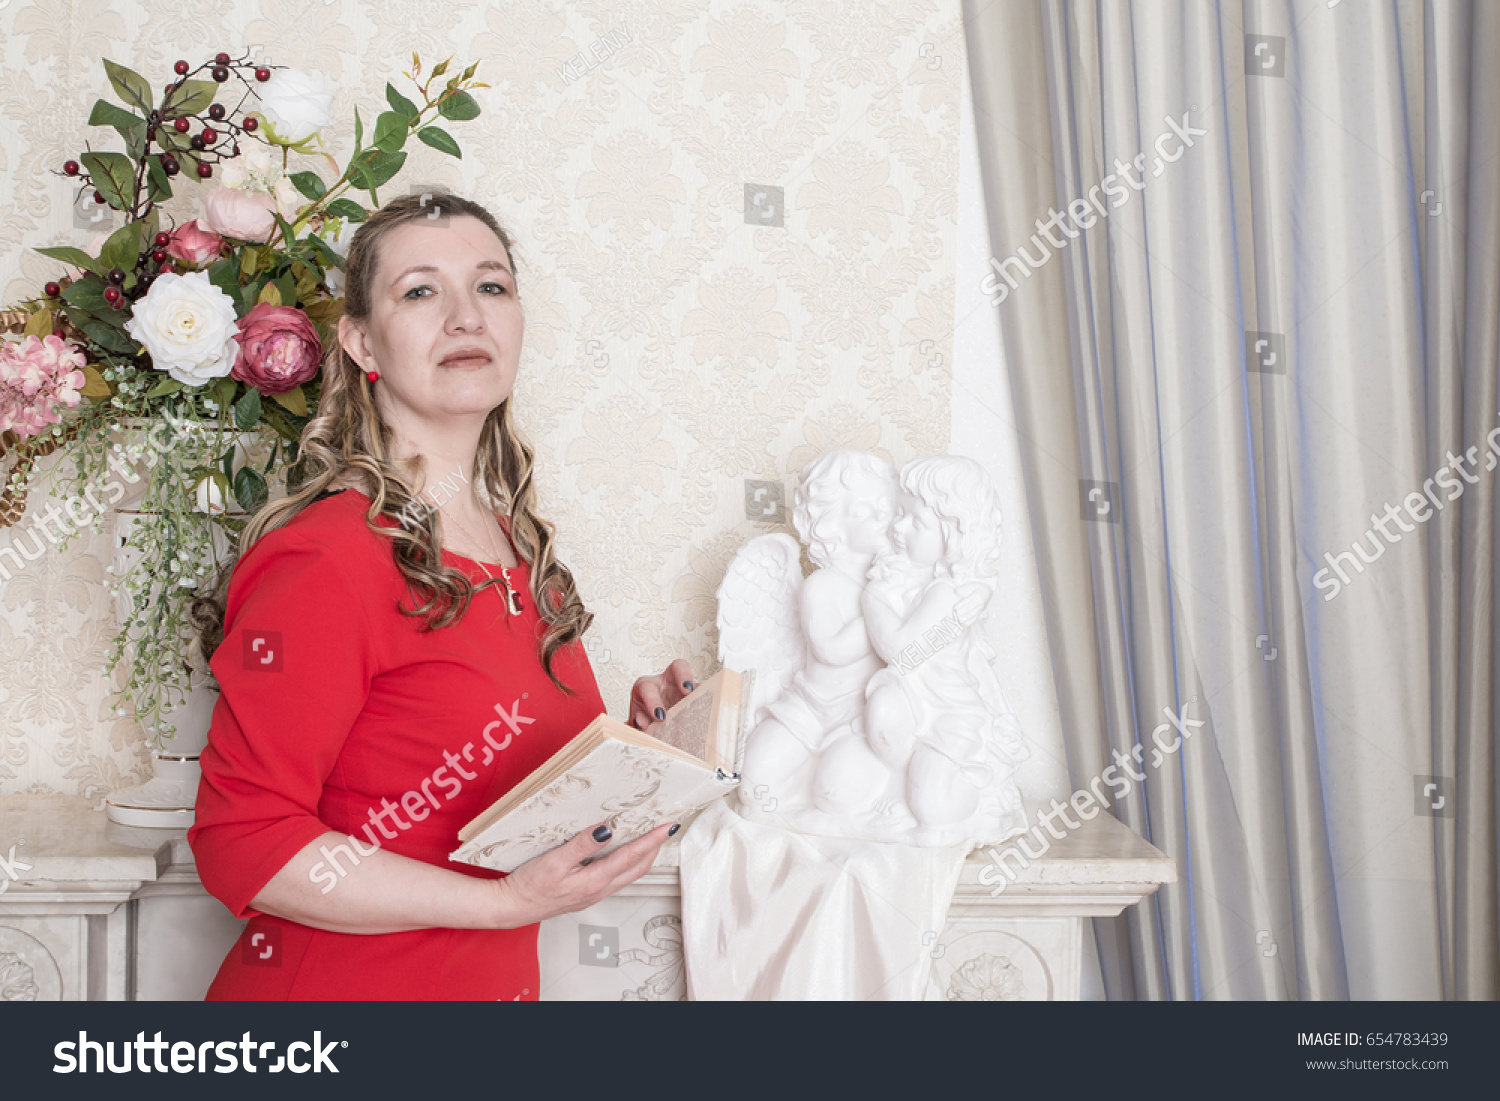 e1d5d26d2 Ugly Domineering Woman Posing Red Dress Stock Photo (Edit Now ...